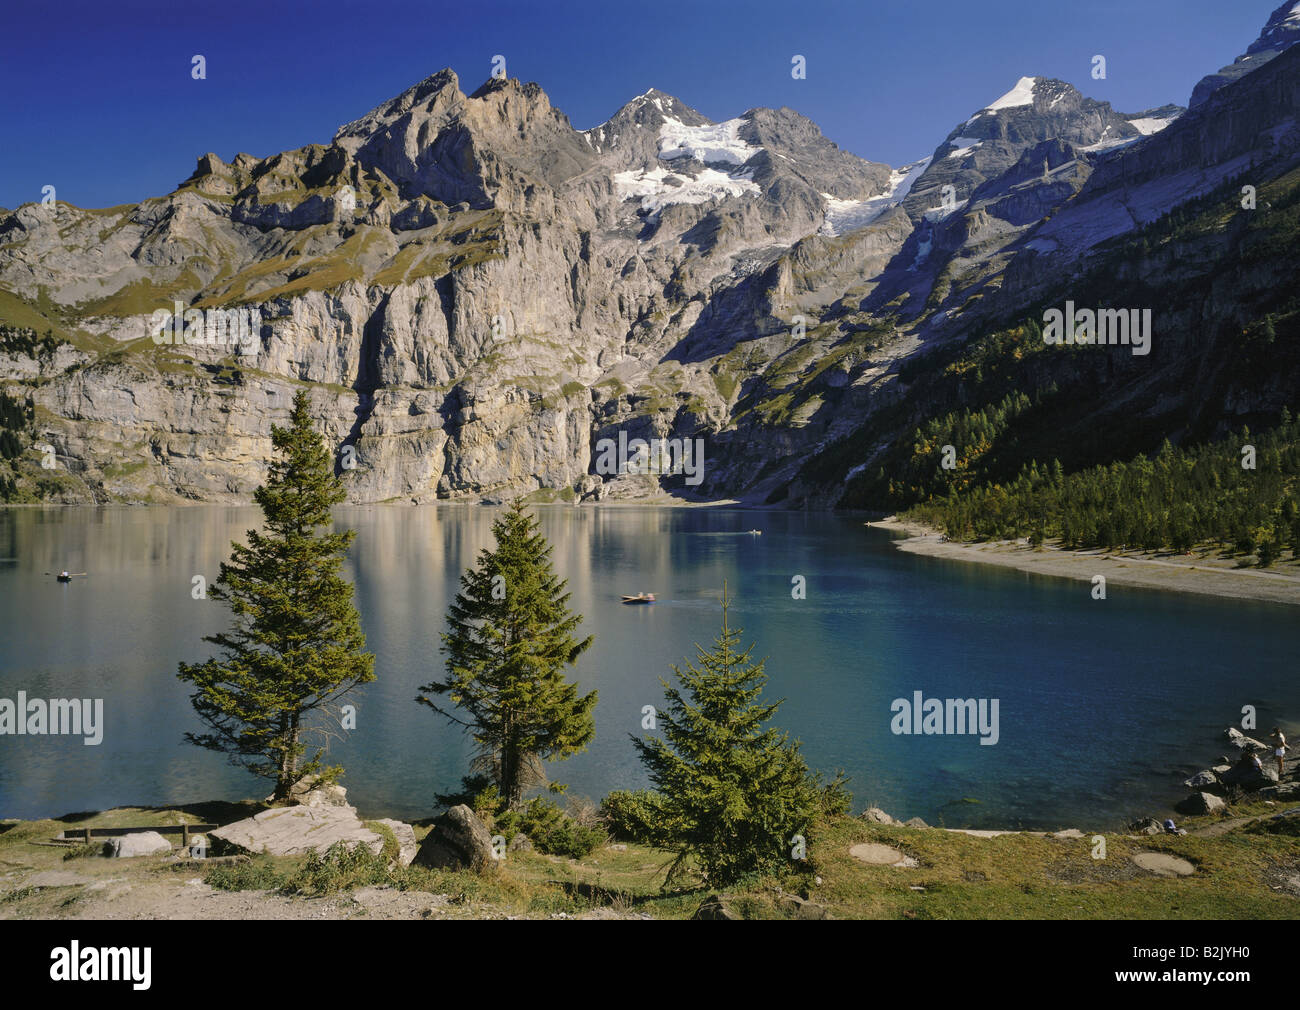 geography / travel, Switzerland, Berne, landscapes, Oeschinen Lake, Blumlisalp Range, Additional-Rights-Clearance - Stock Image